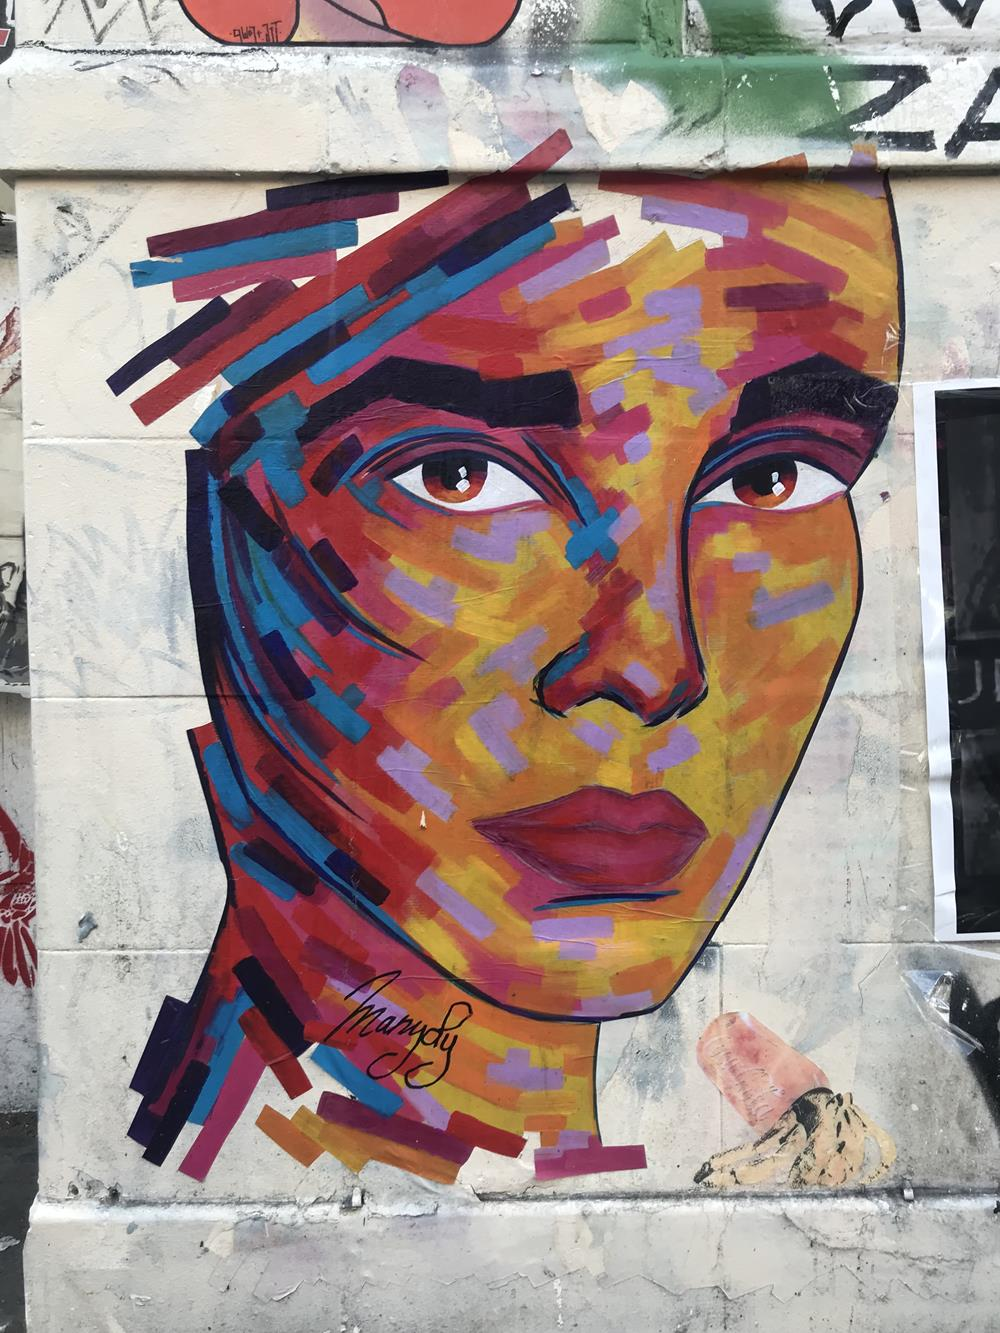 Image of a woman's face depicted in street art